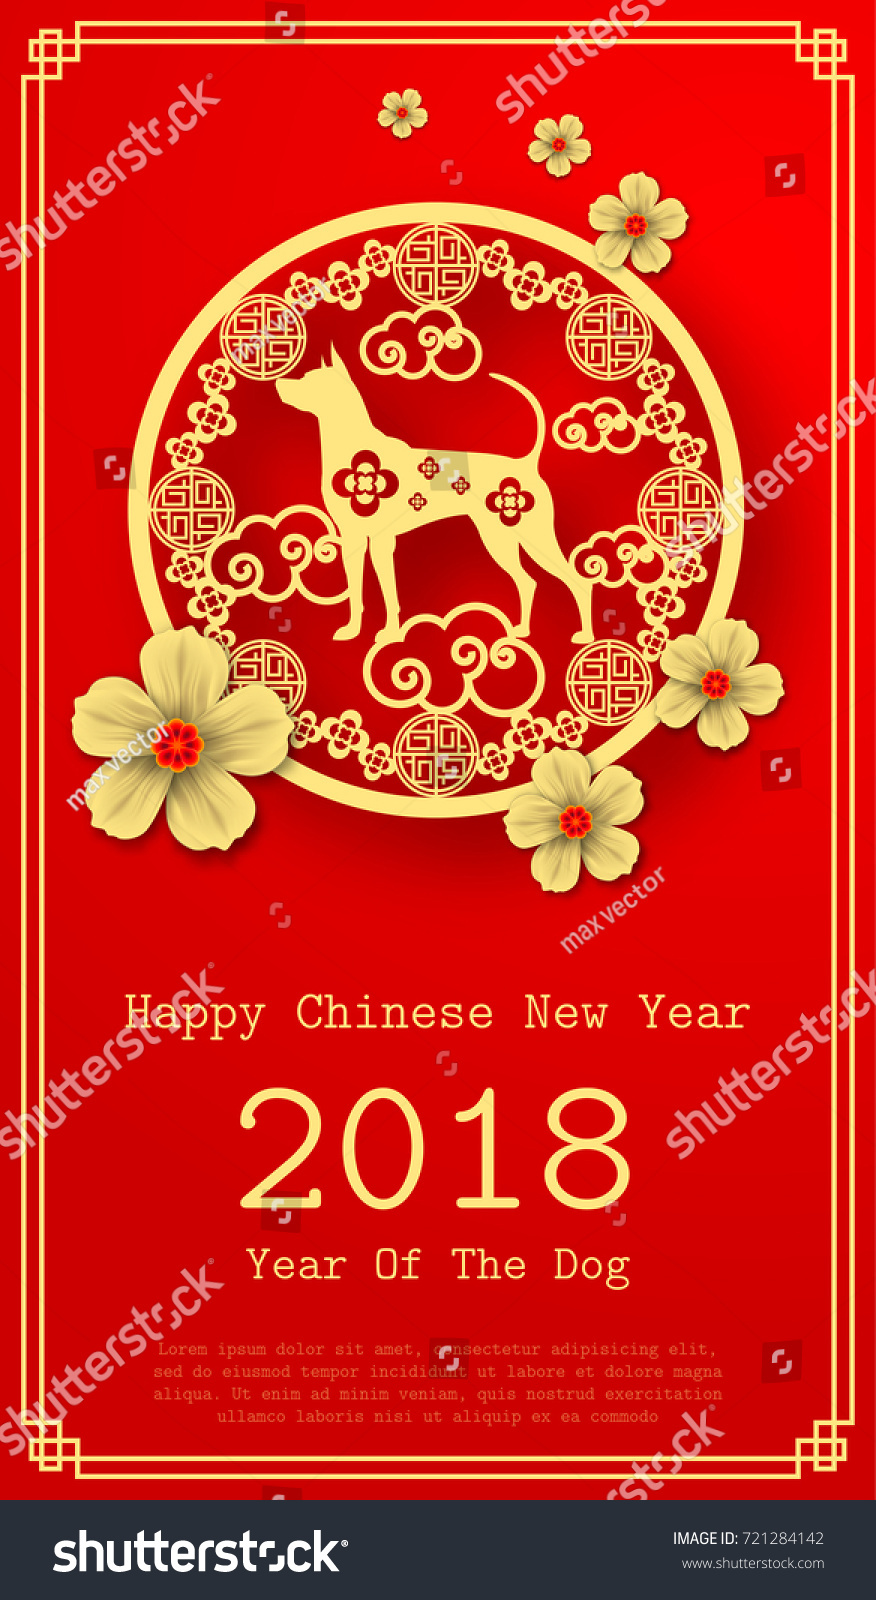 Similar Images Stock Photos Vectors Of 2018 Chinese New Year